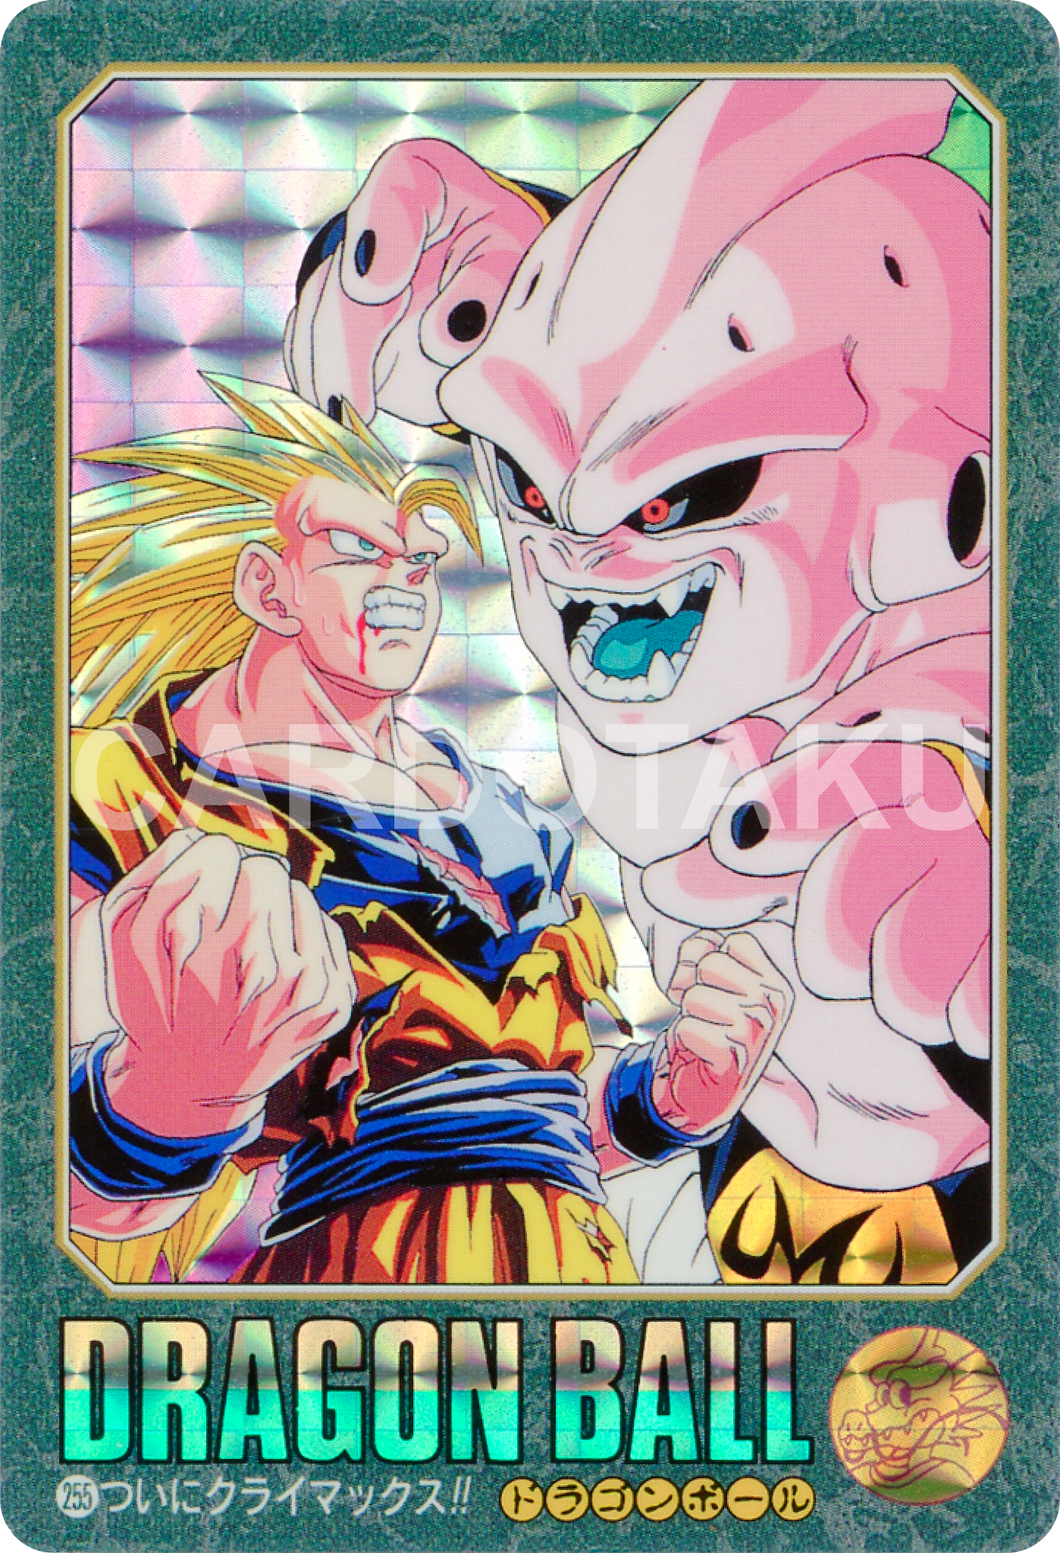 DRAGON BALL Z Visual Adventure 255 Son Goku SS3 vs. Majin Buu Aku